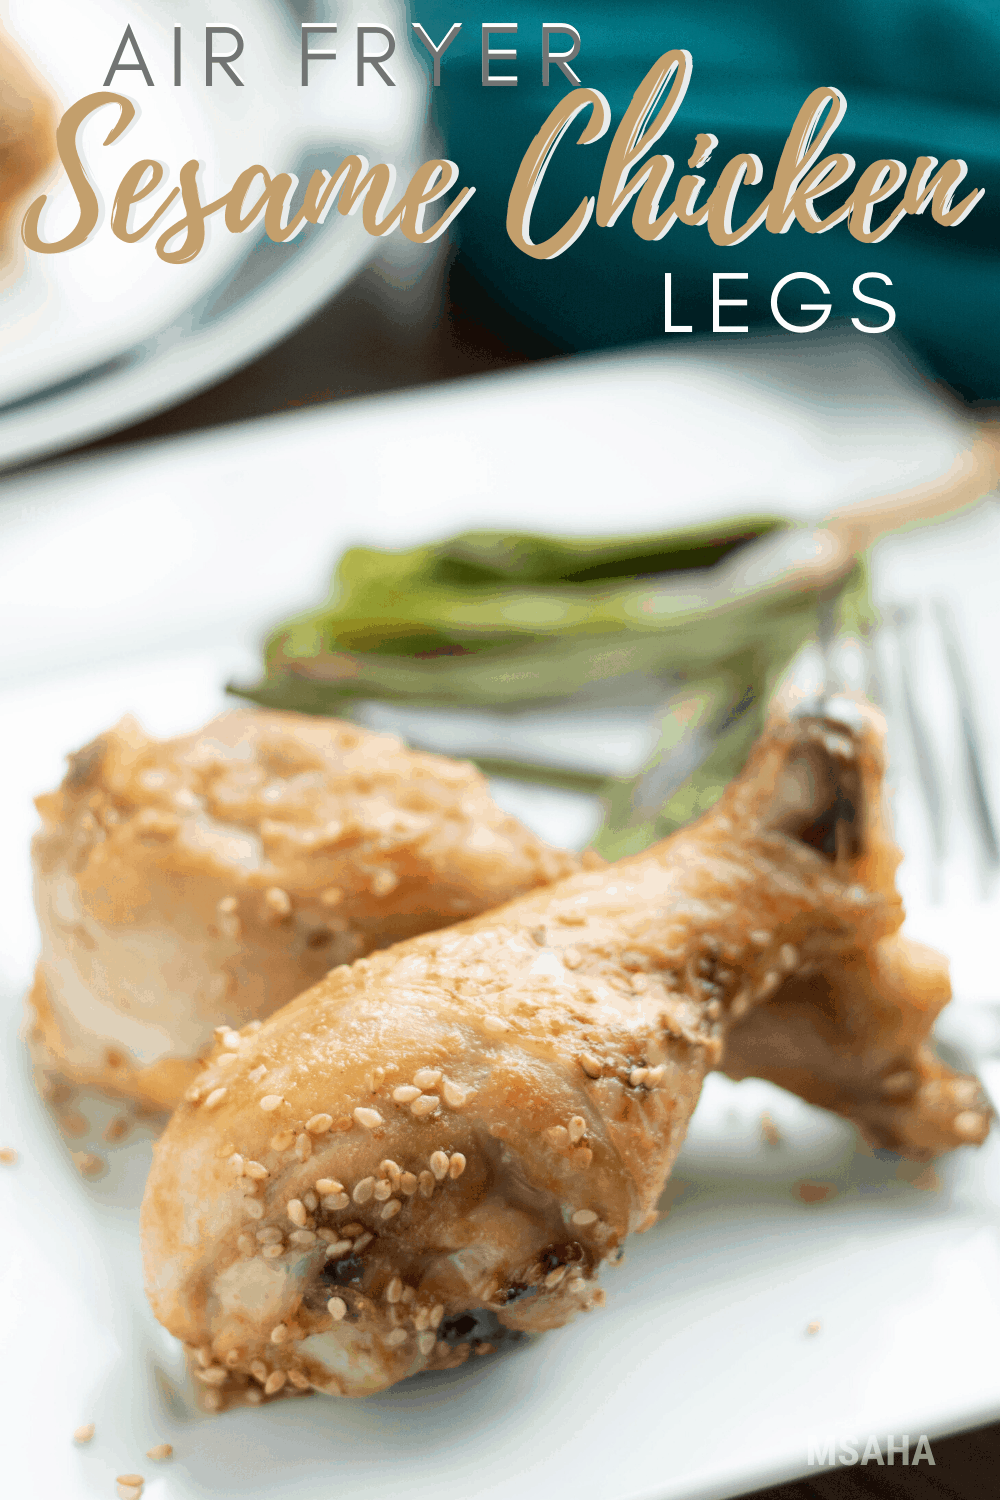 Learn how to make the best Low Carb Air Fryer Sesame Chicken Legs! So delicious and so low-carb friendly you are going to love this family-friendly recipe. #airfryer #recipe #chickenrecipe #lowcarb via @mystayathome